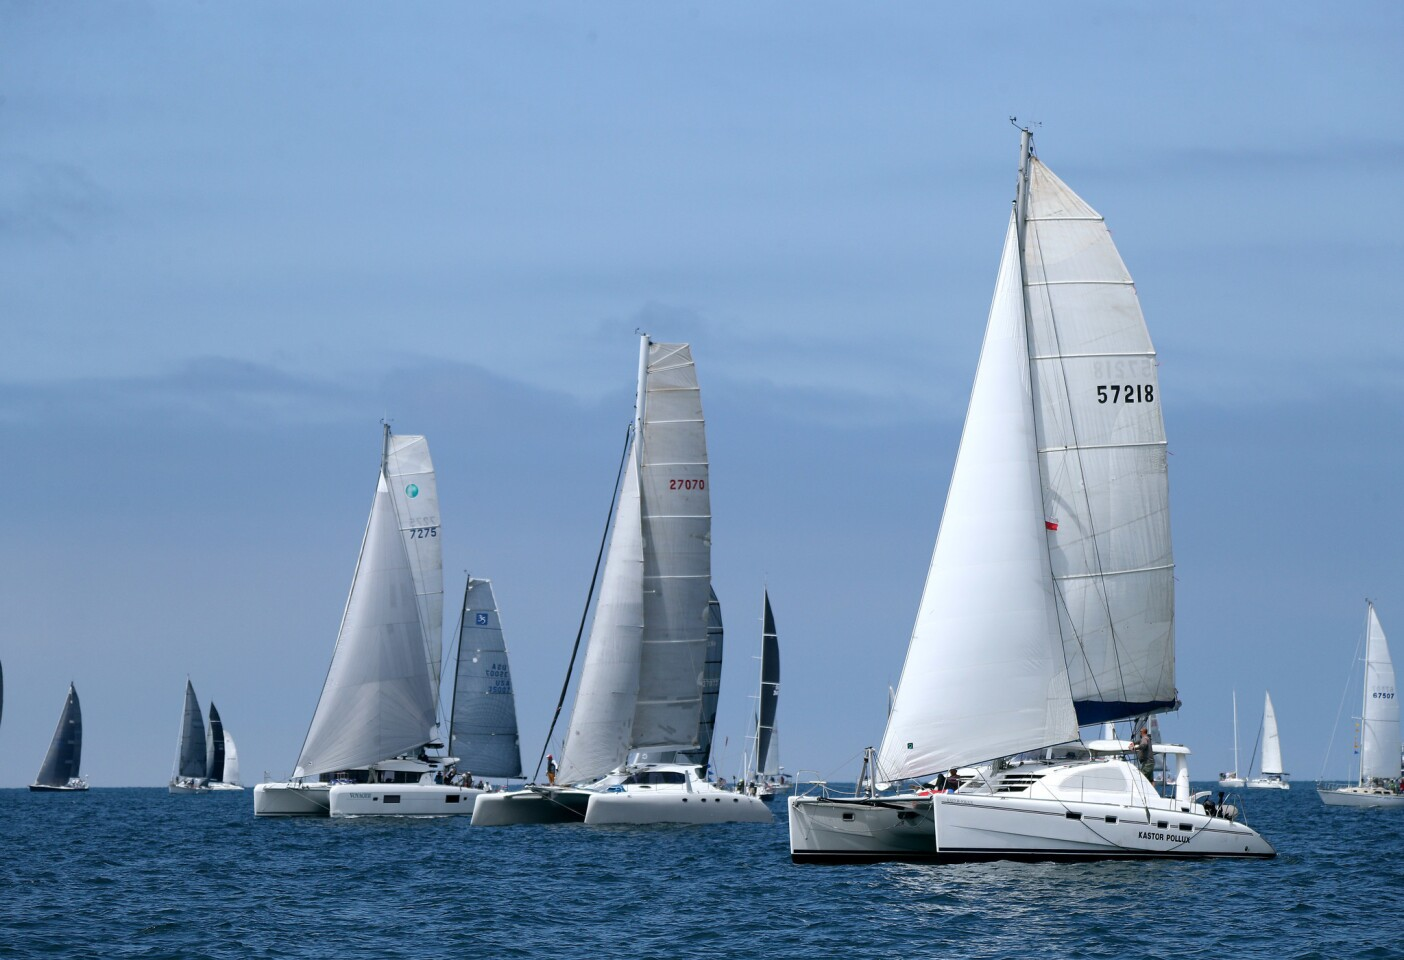 Photo Gallery: Newport to Ensenada International Yacht Race